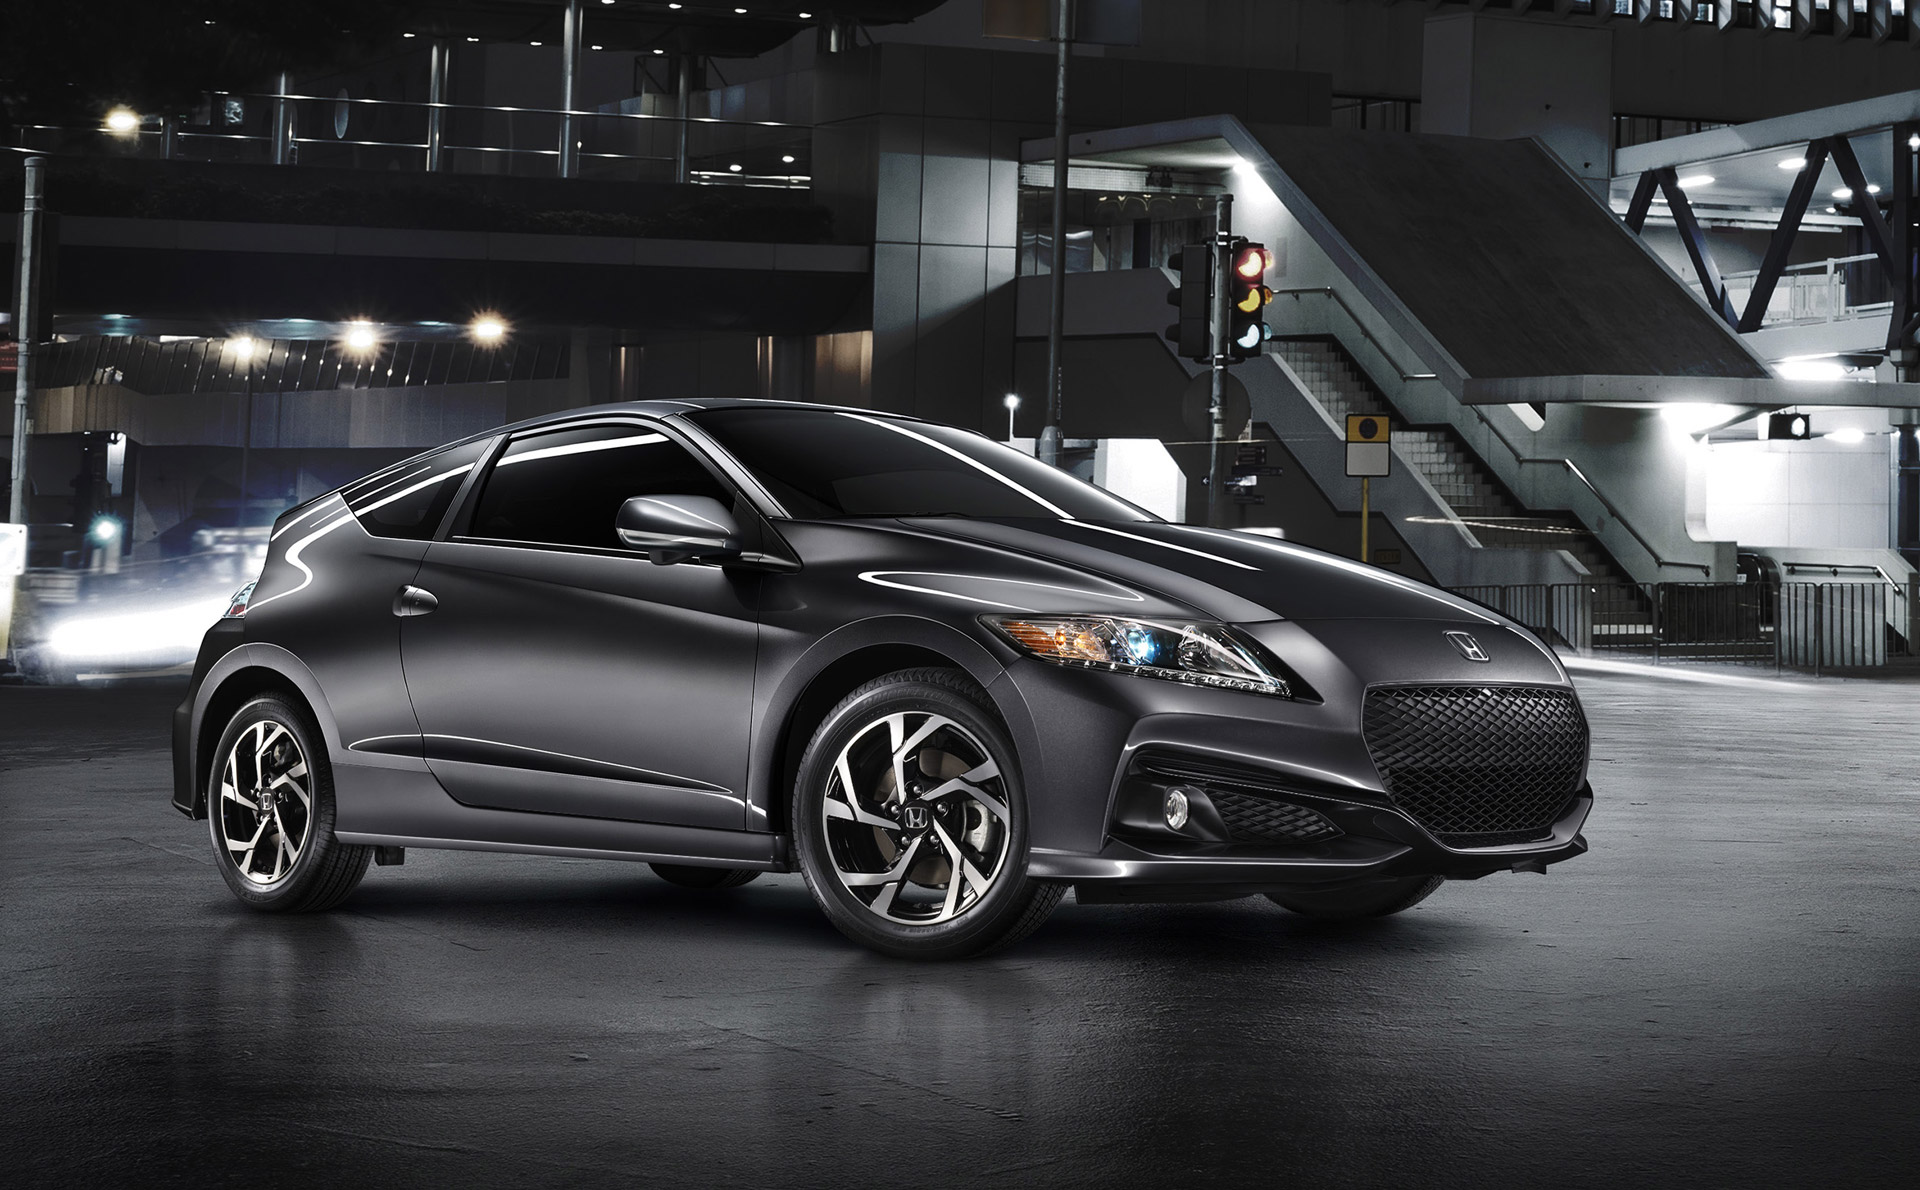 2016 Honda Cr Z Gets Updated Look No Extra Power